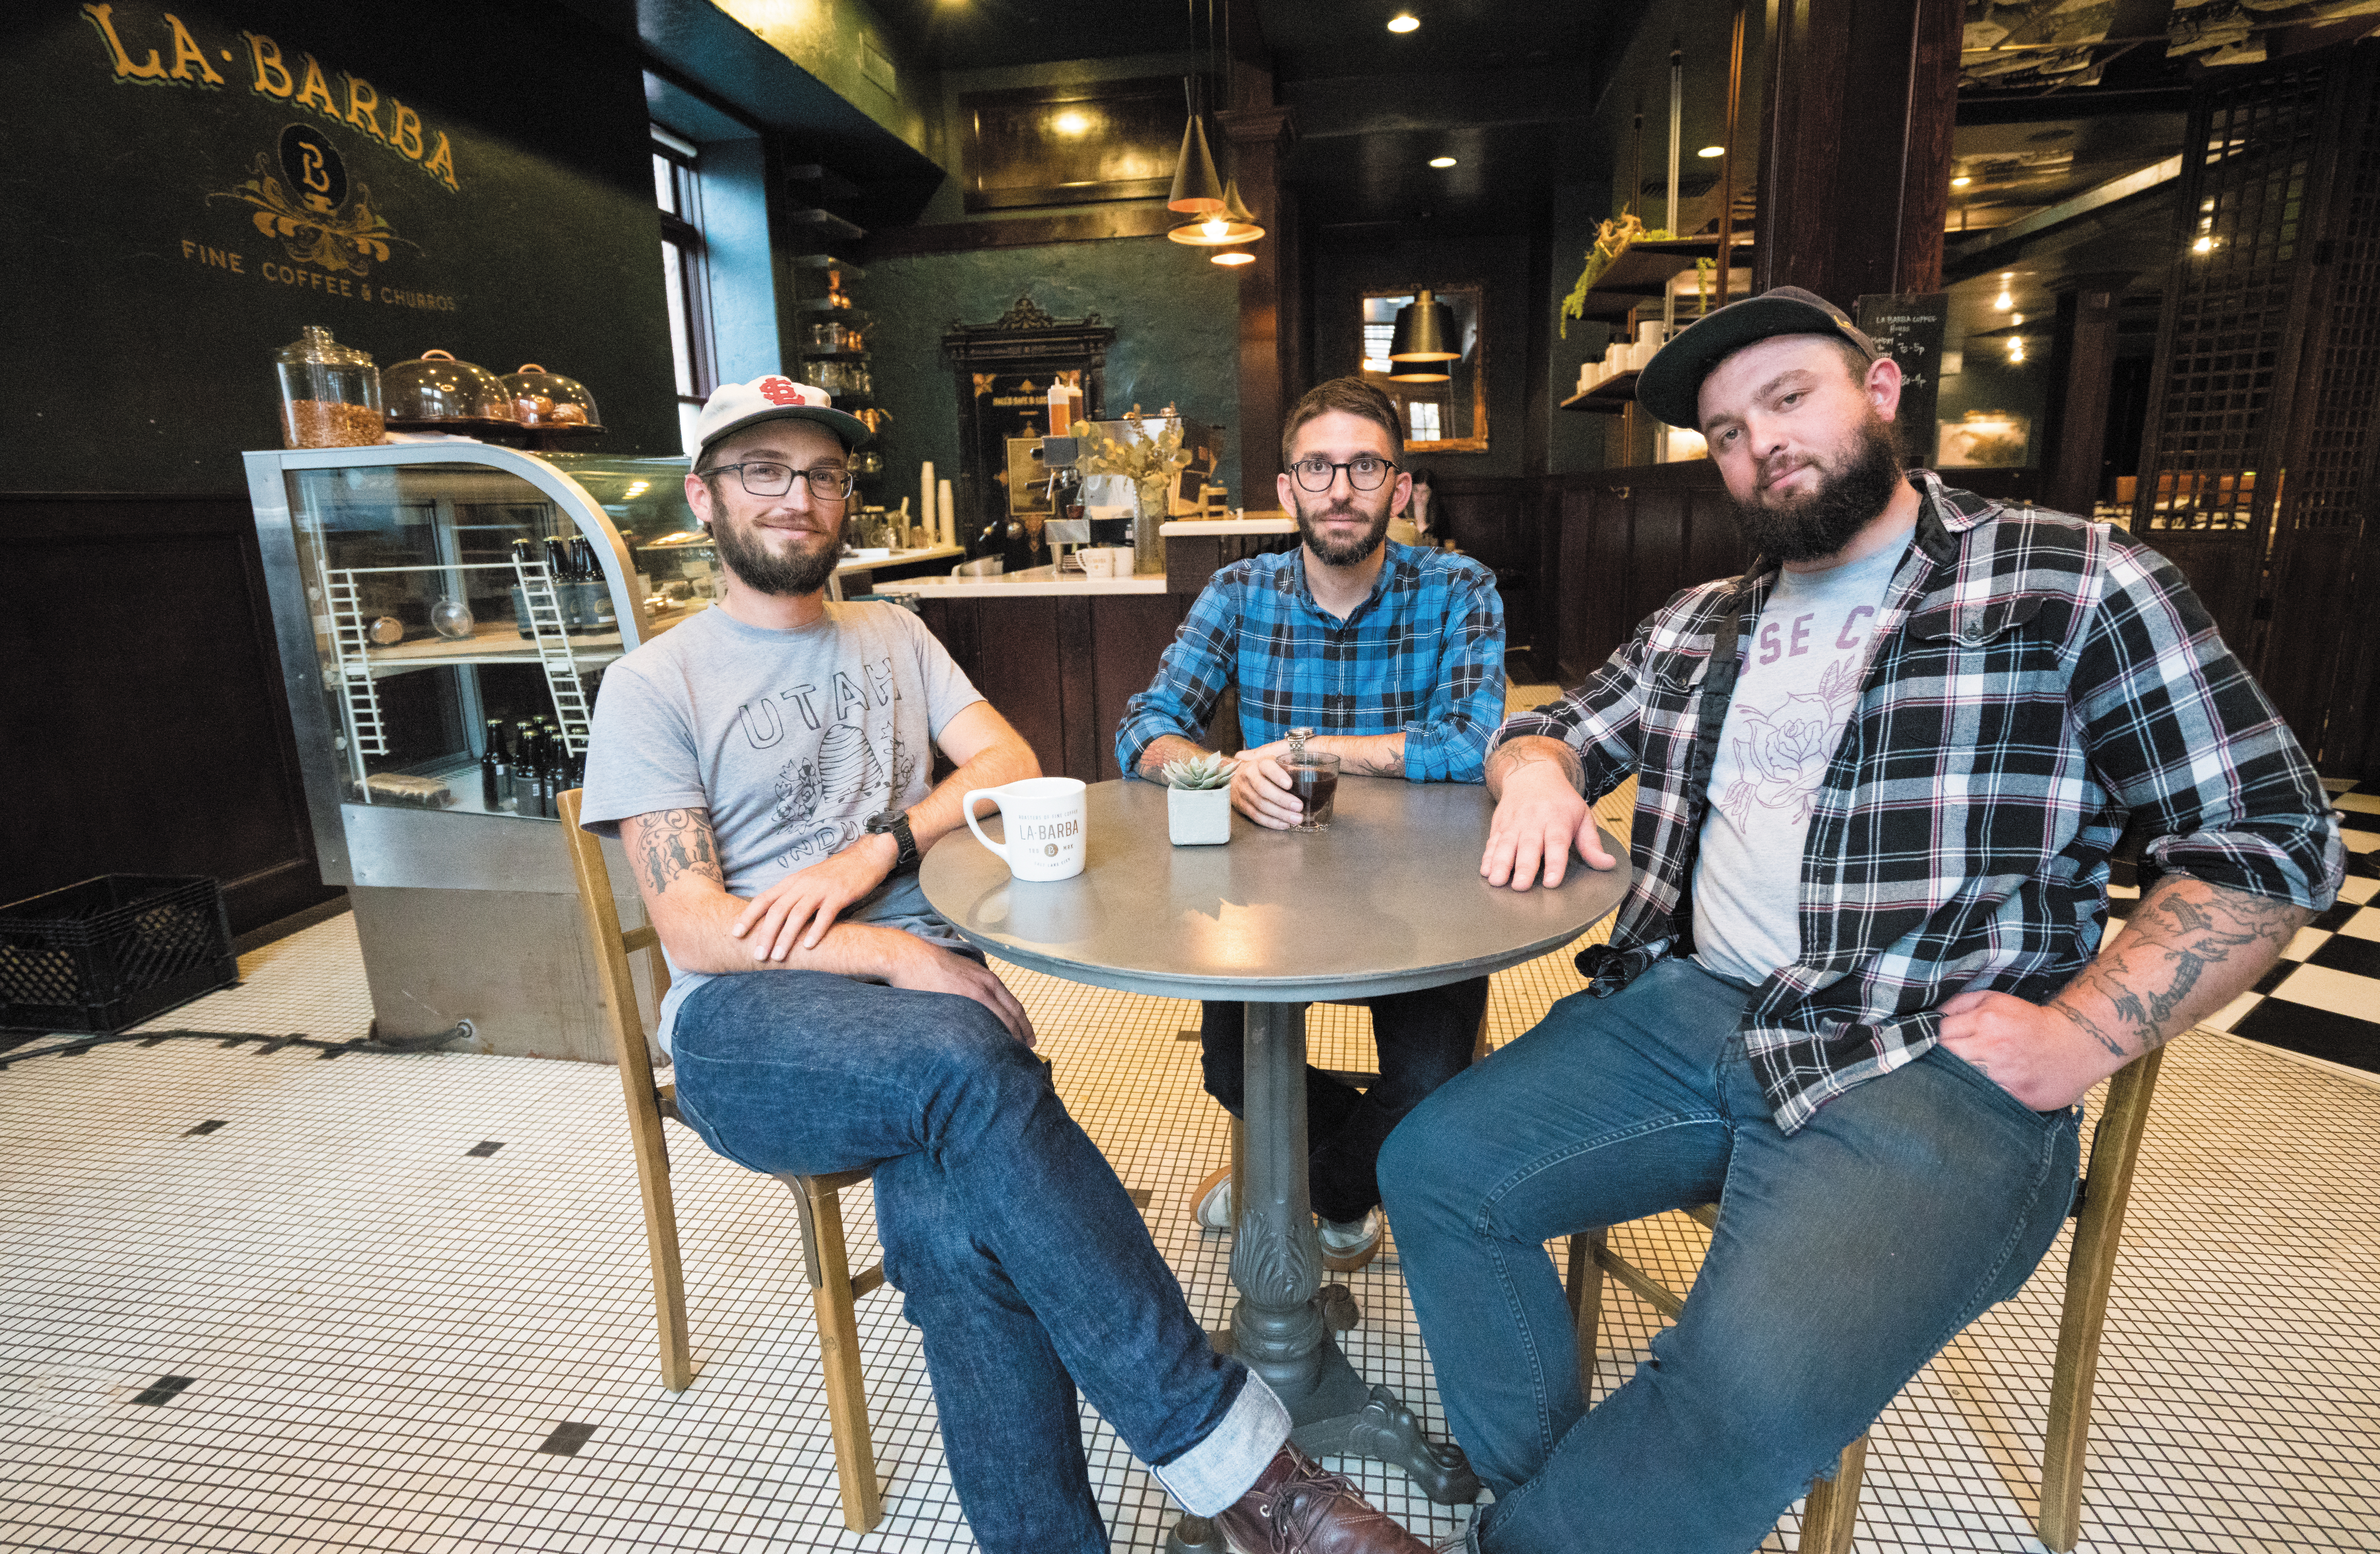 (L–R) Josh Rosenthal, Joe Evans and Levi Rogers are rounding out La Barba's wholesale roasts and specialty delights.